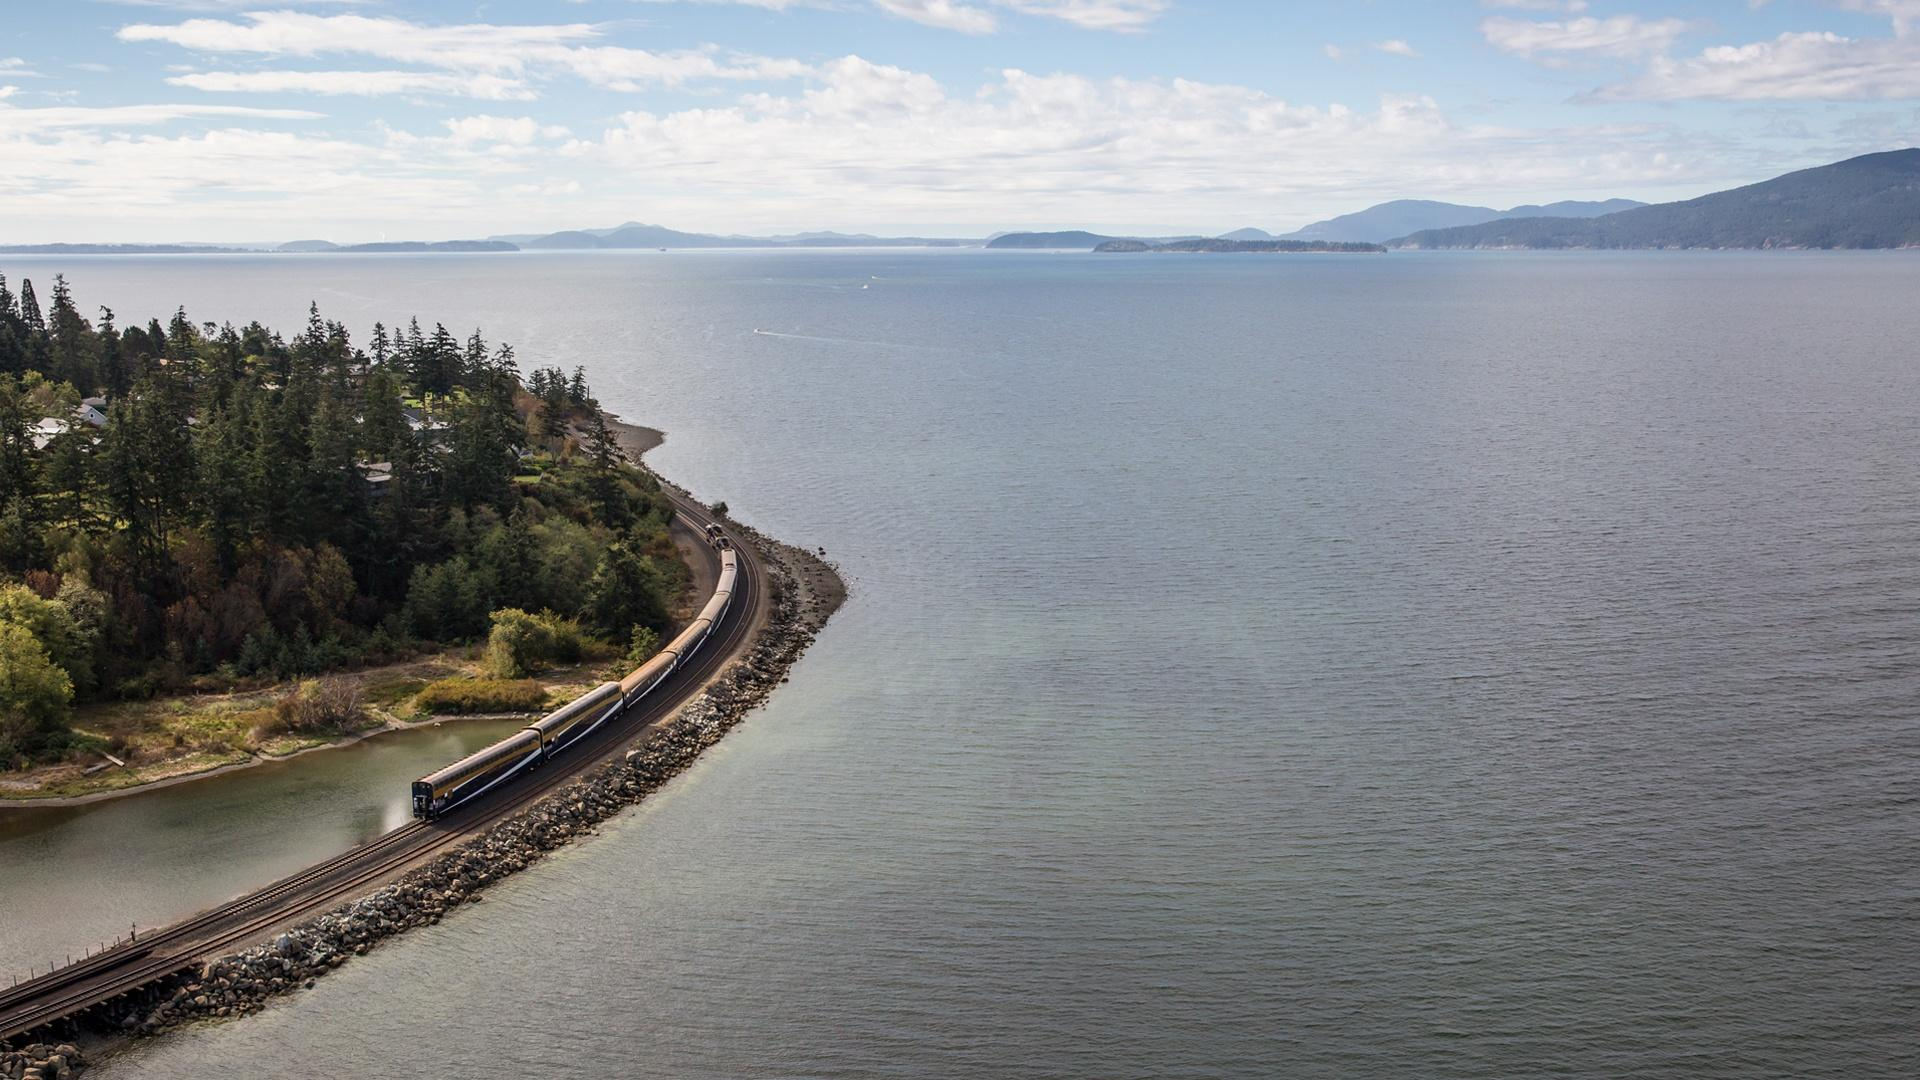 Rocky Mountaineer traveling along Chuckanut Bay.